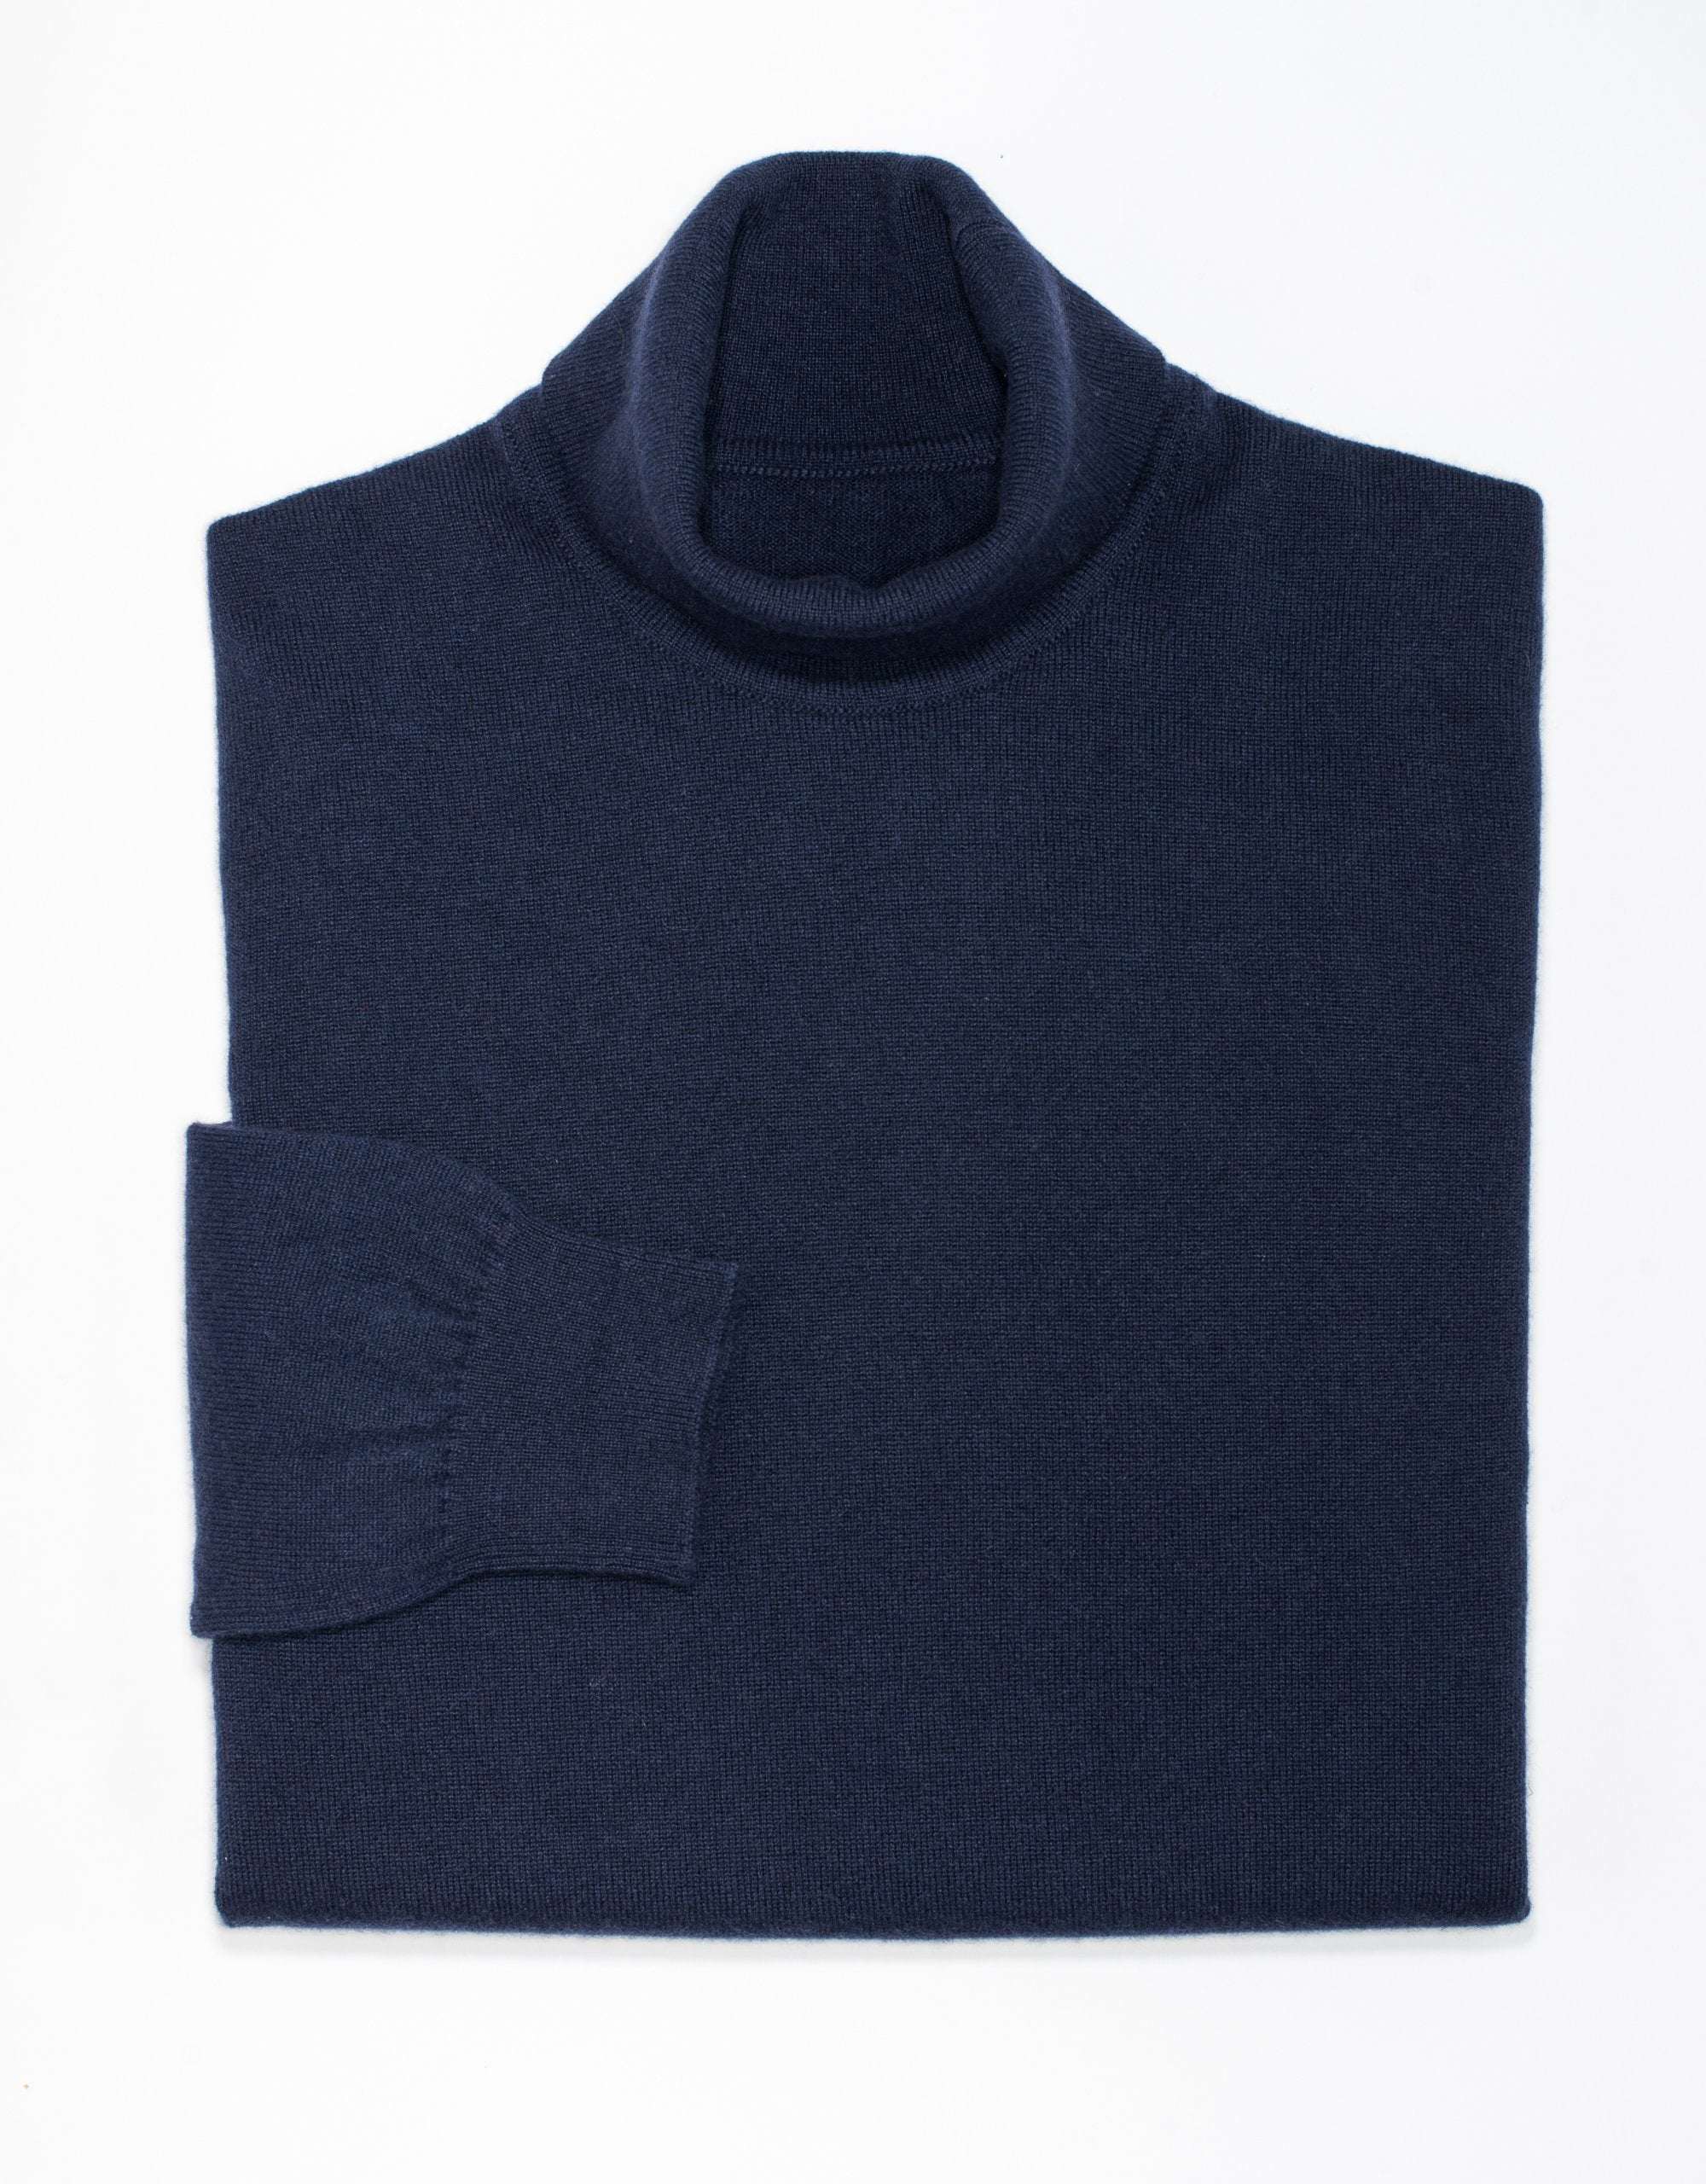 NAVY CASHMERE ROLL NECK SWEATER